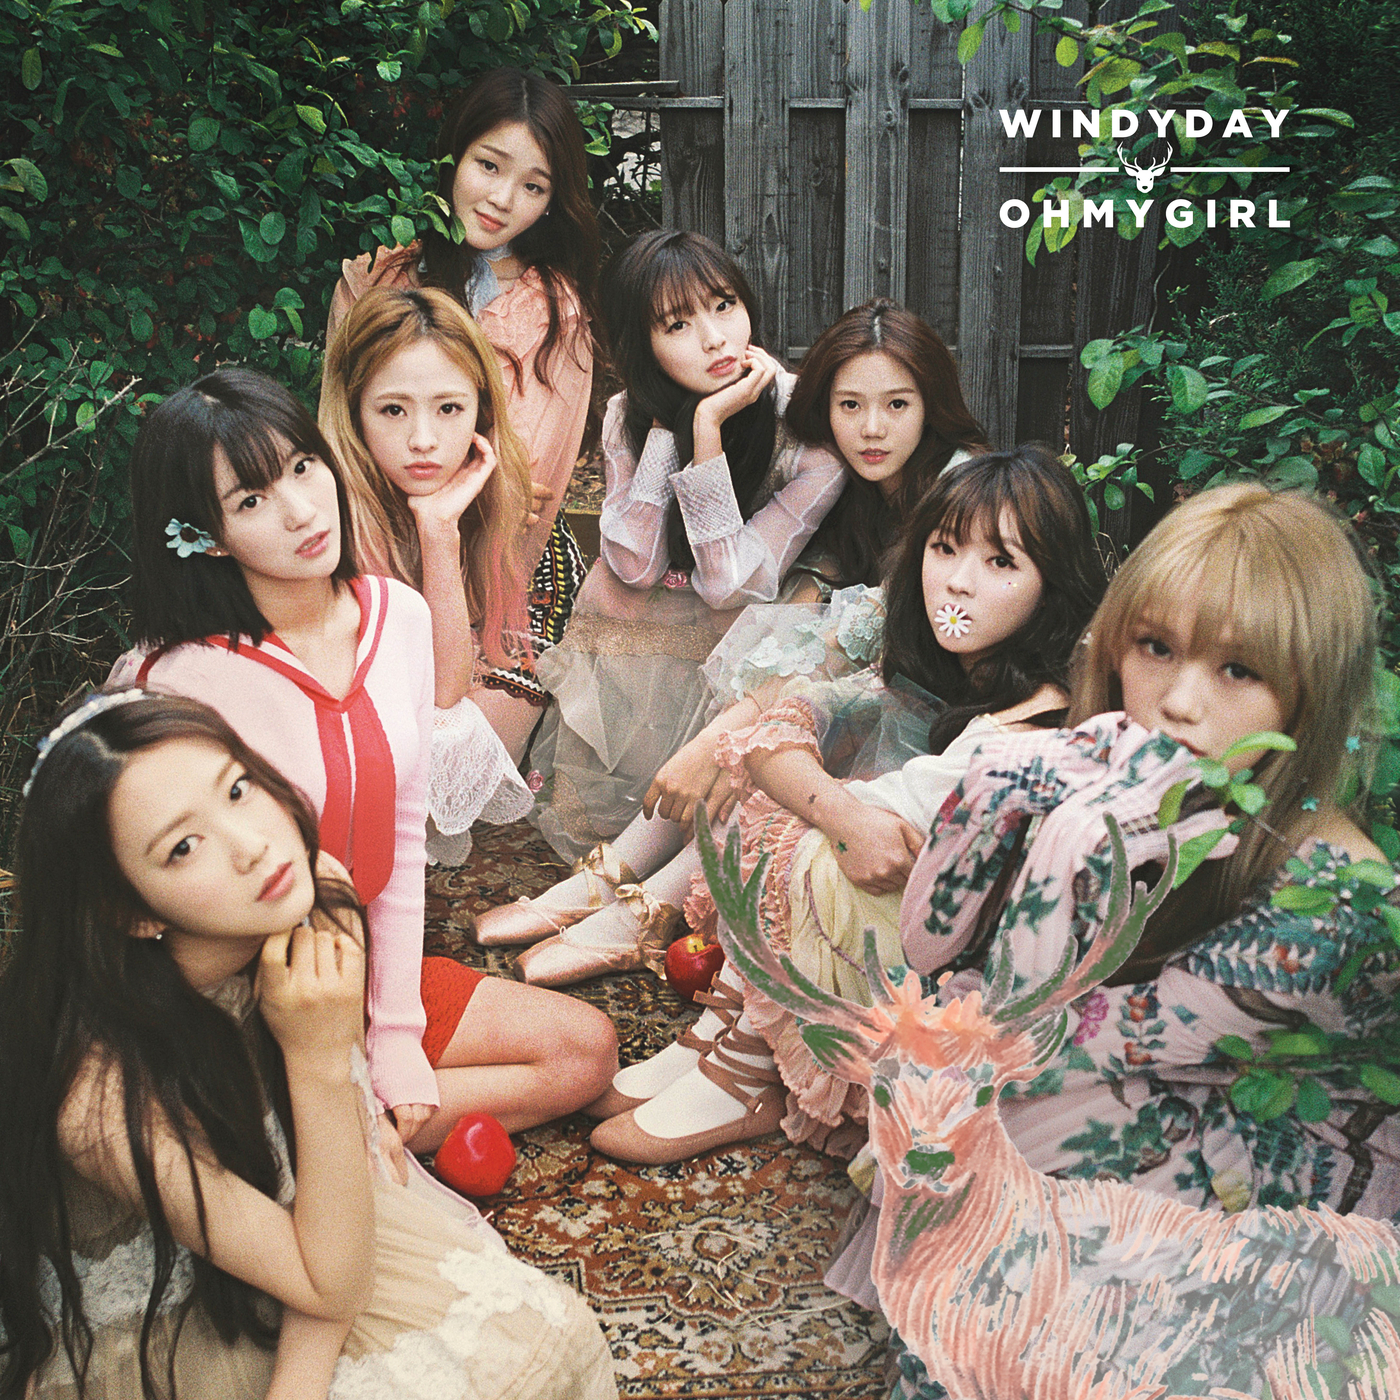 WINDY DAY - OH MY GIRL